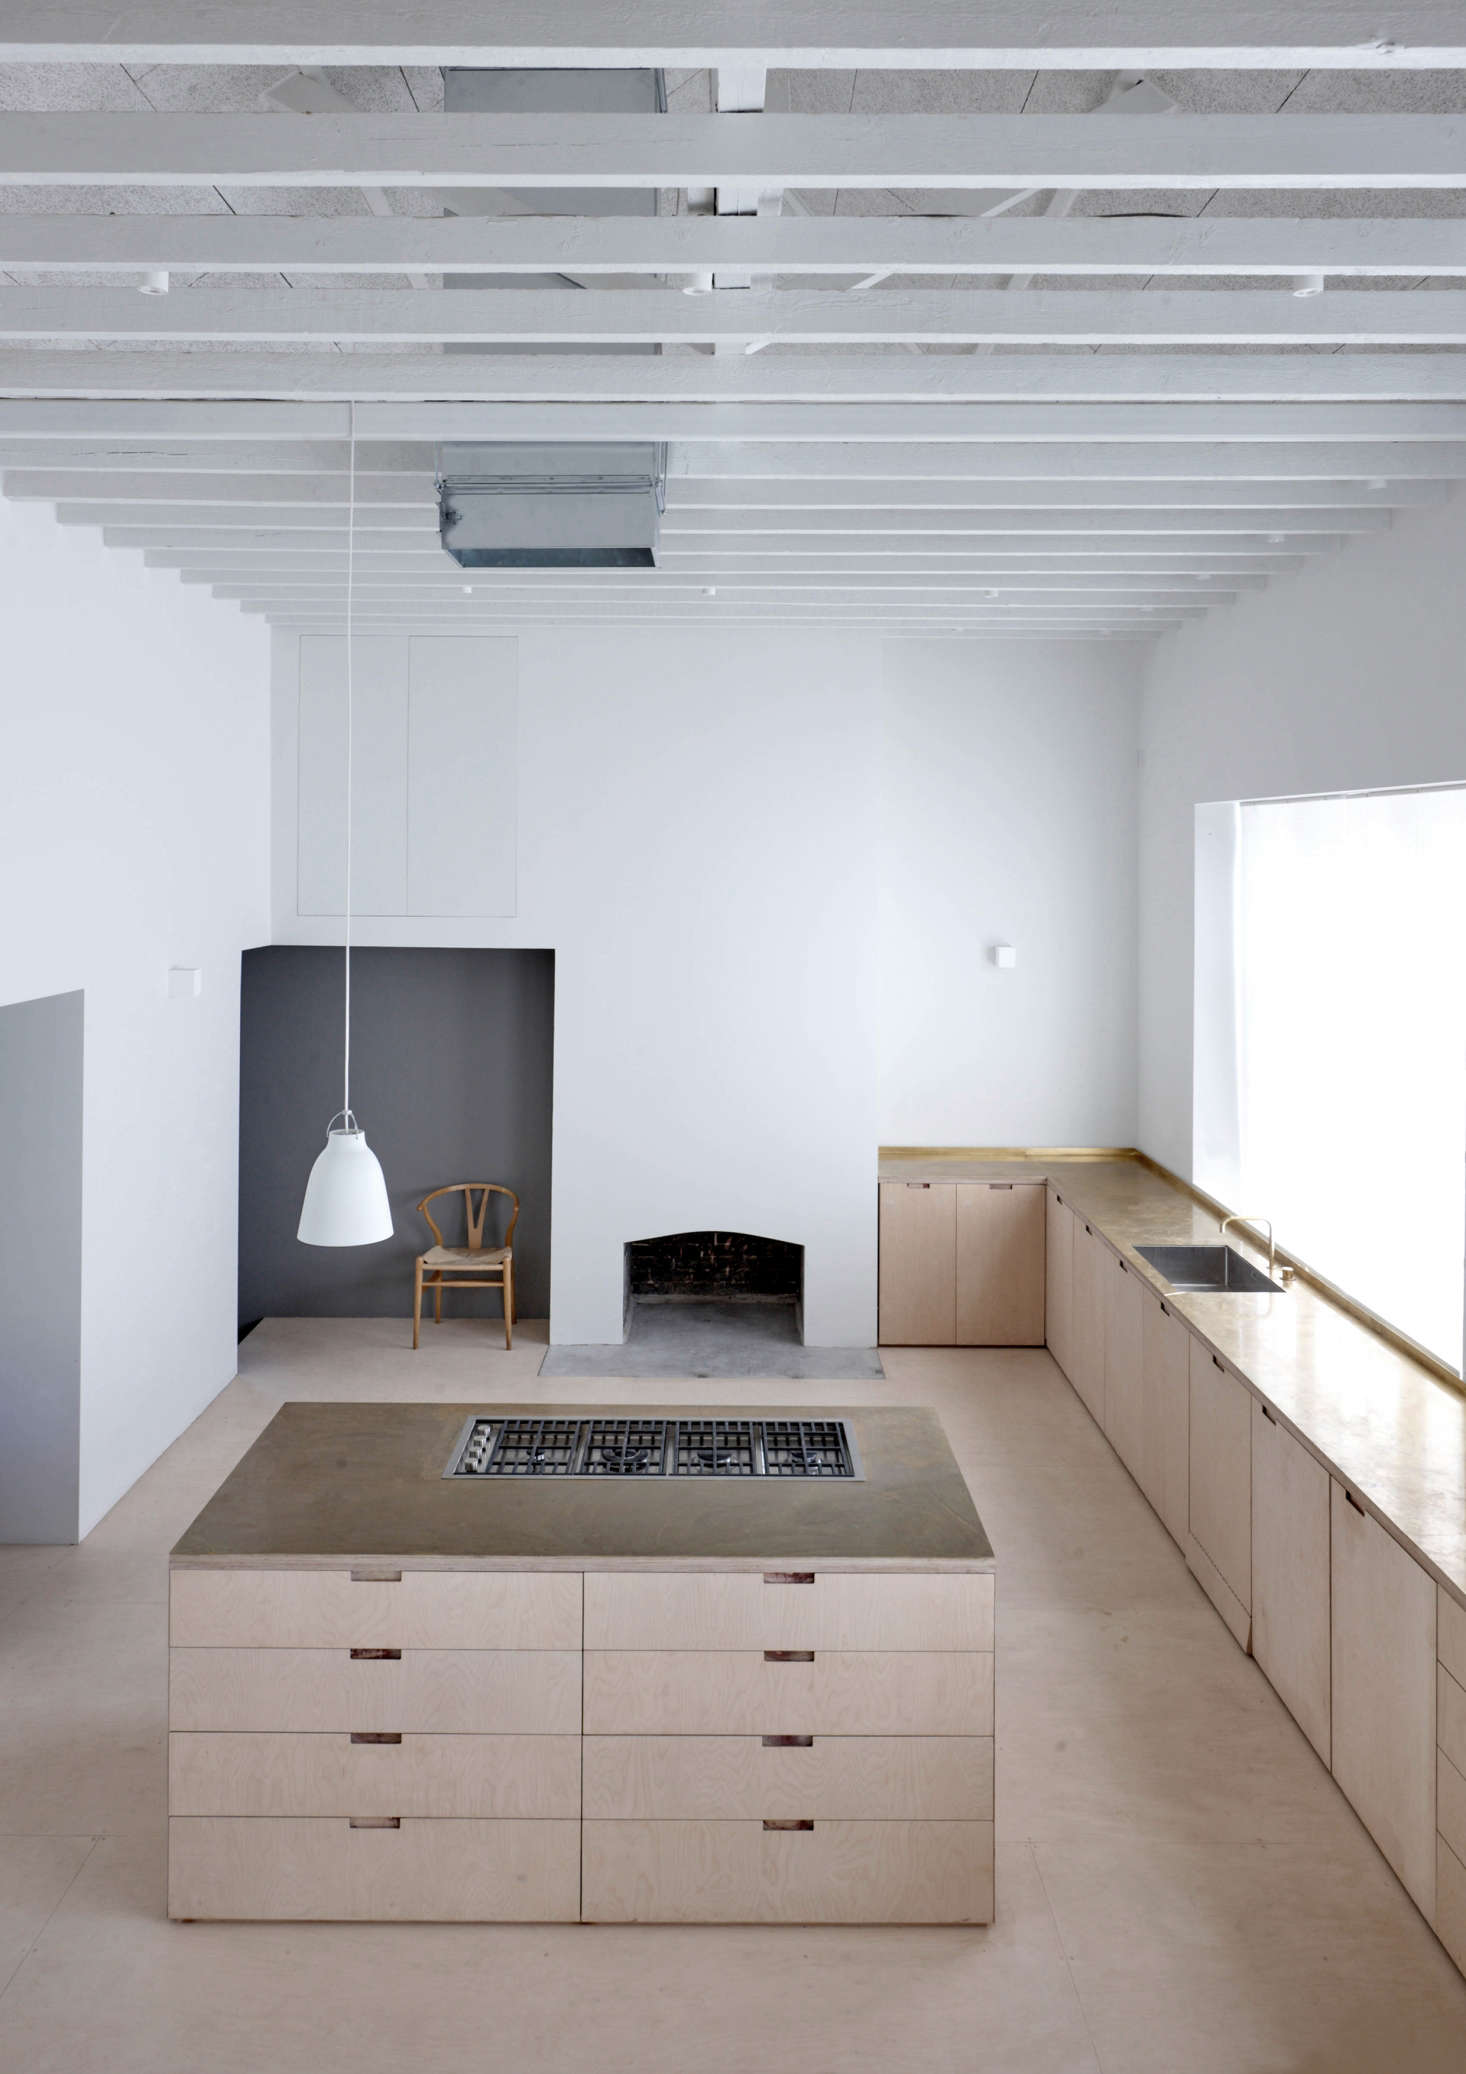 Viewed from the upstairs bedroom, the kitchen is &#8